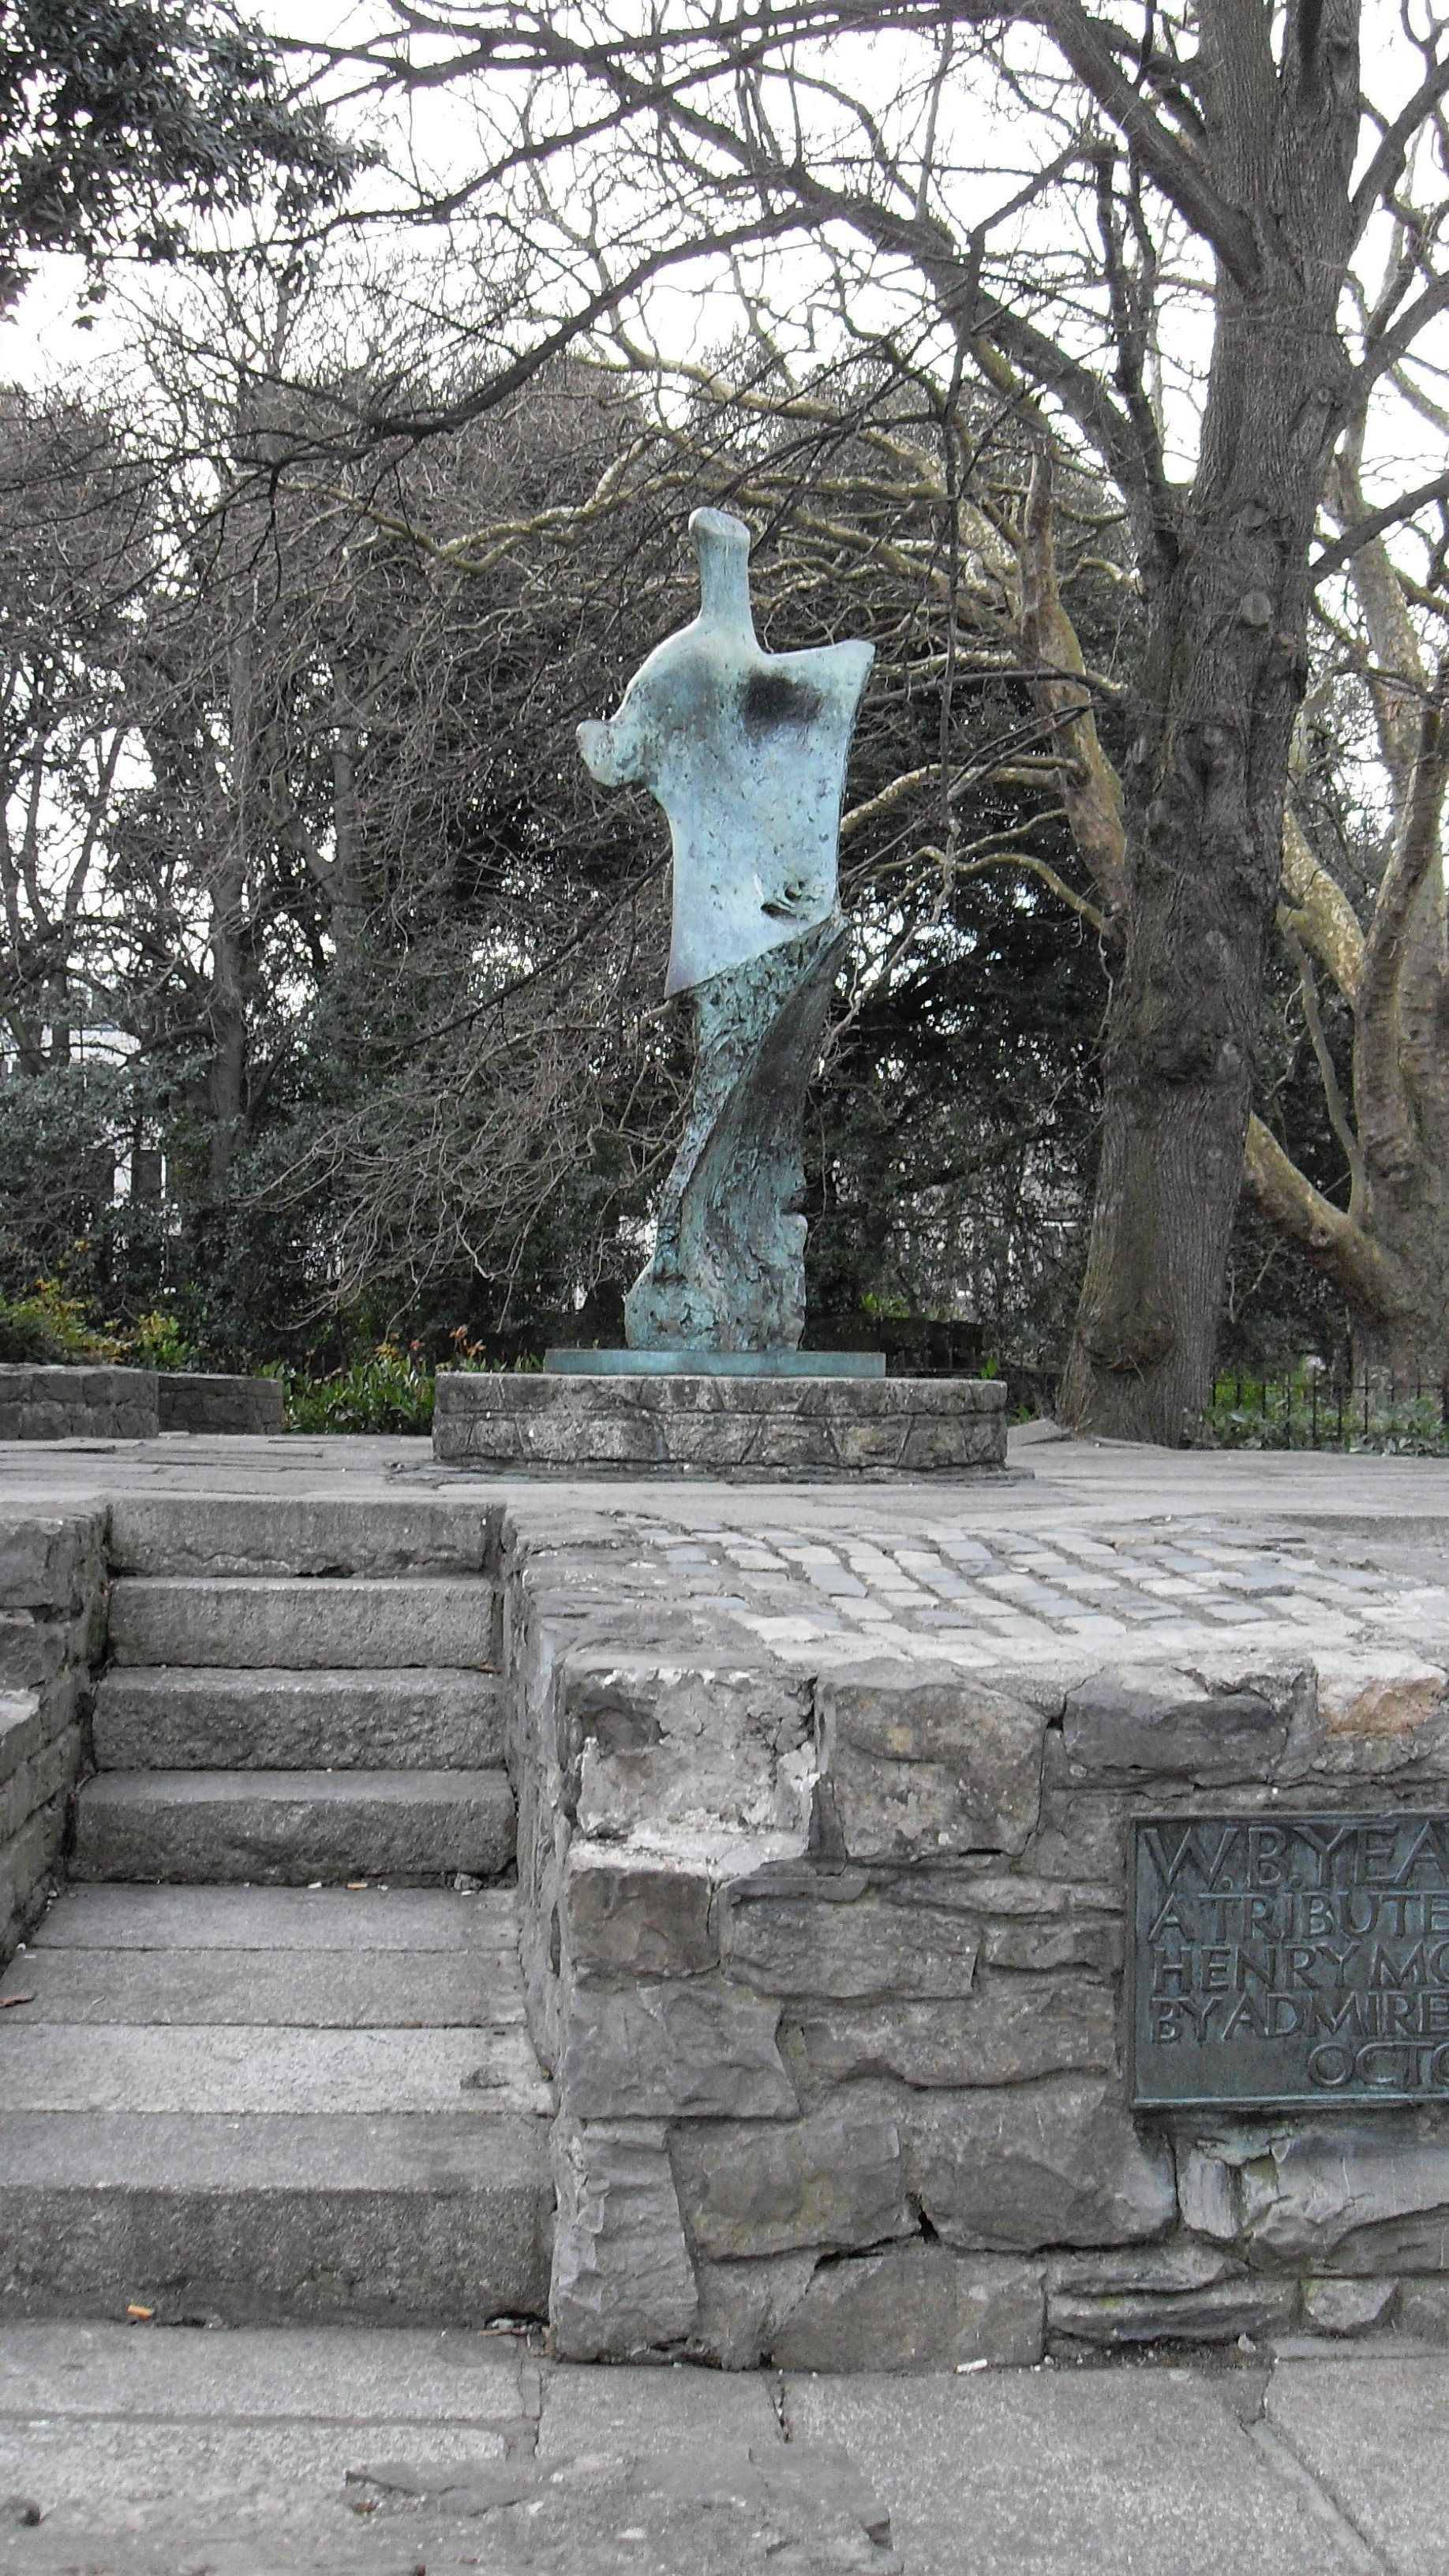 Tribute to W.B. Yeats by Henry Moore, Stephen's Green